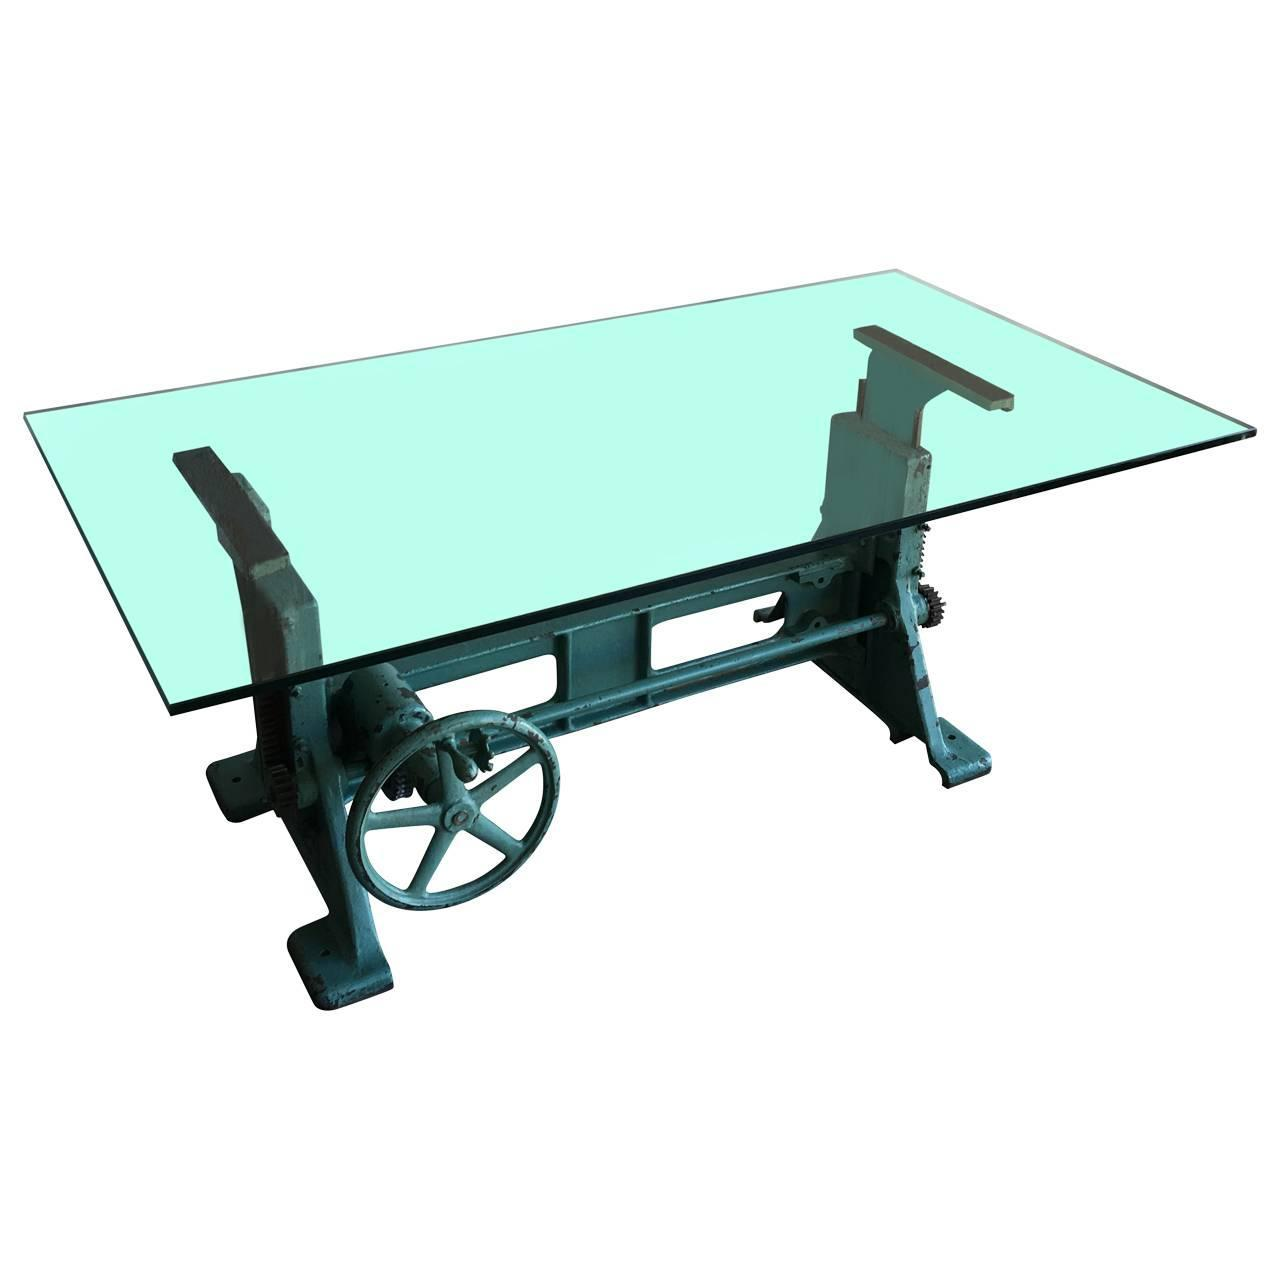 Industrial Dining Table For Sale at 1stdibs : PhotoAug17102032AMz from www.1stdibs.com size 1280 x 1280 jpeg 44kB